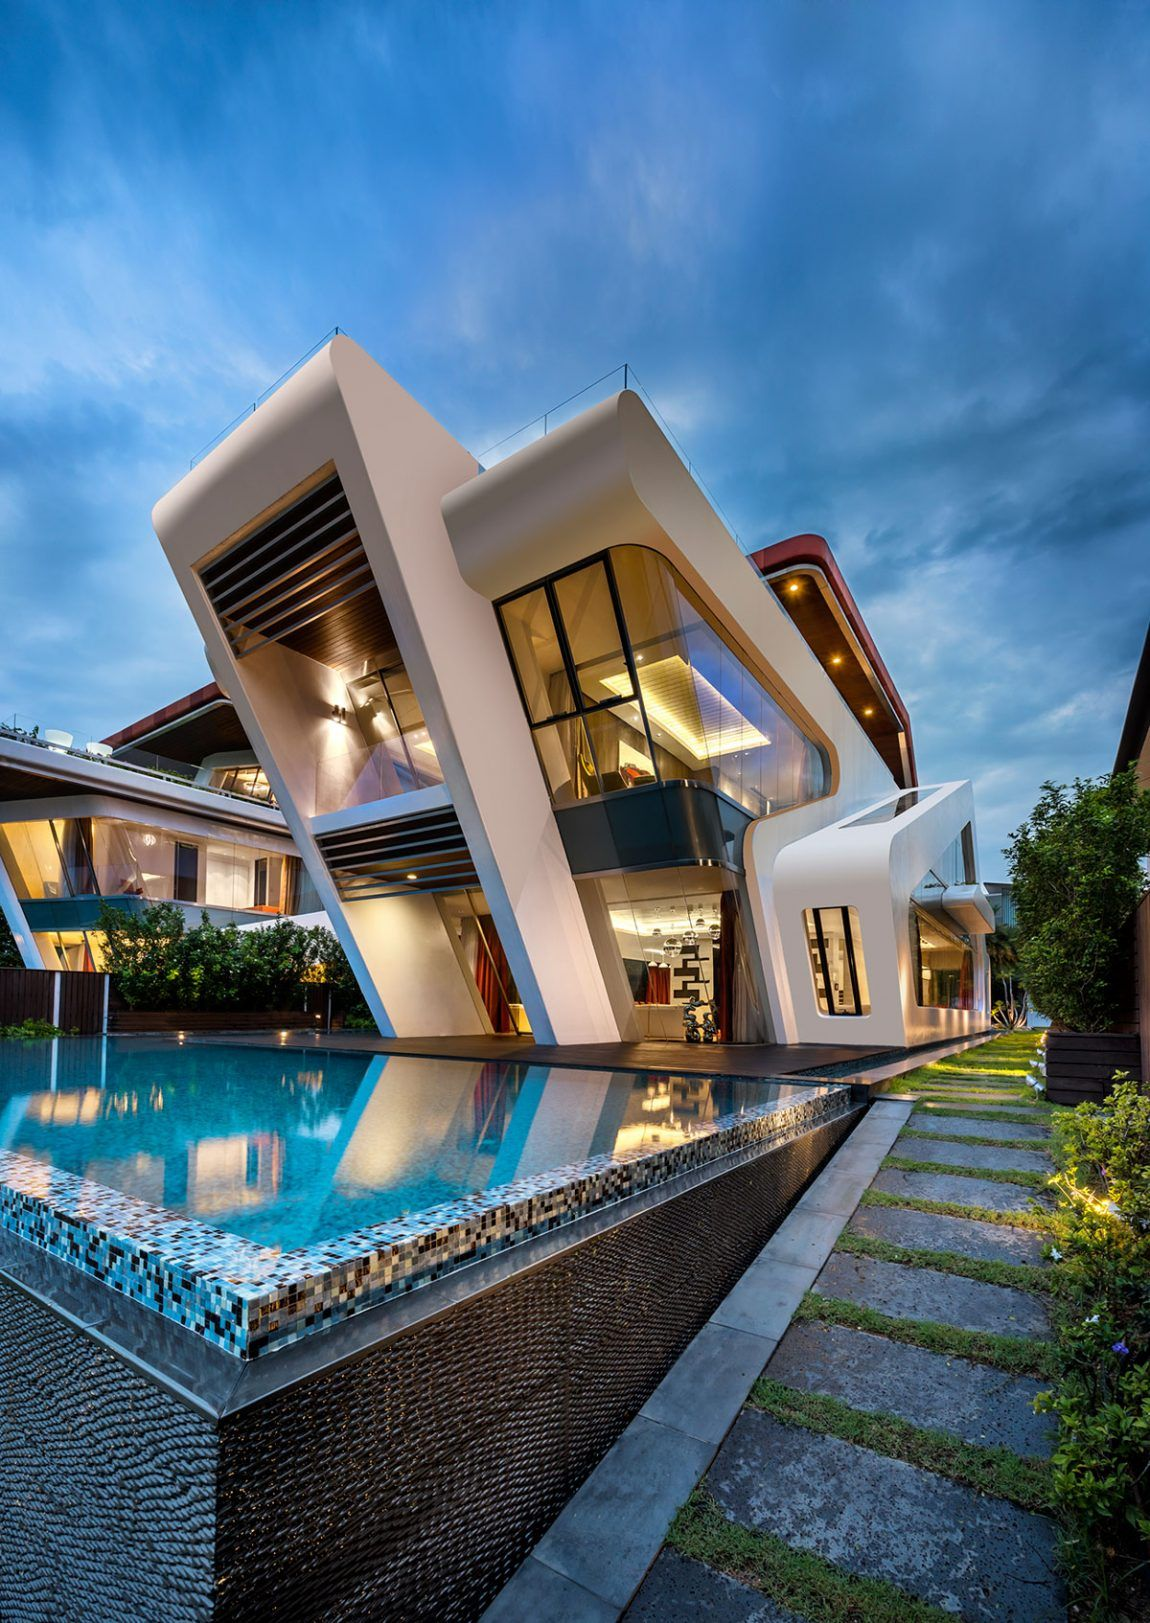 Mercurio design lab create a modern villa in singapore for Contemporary architecture houses